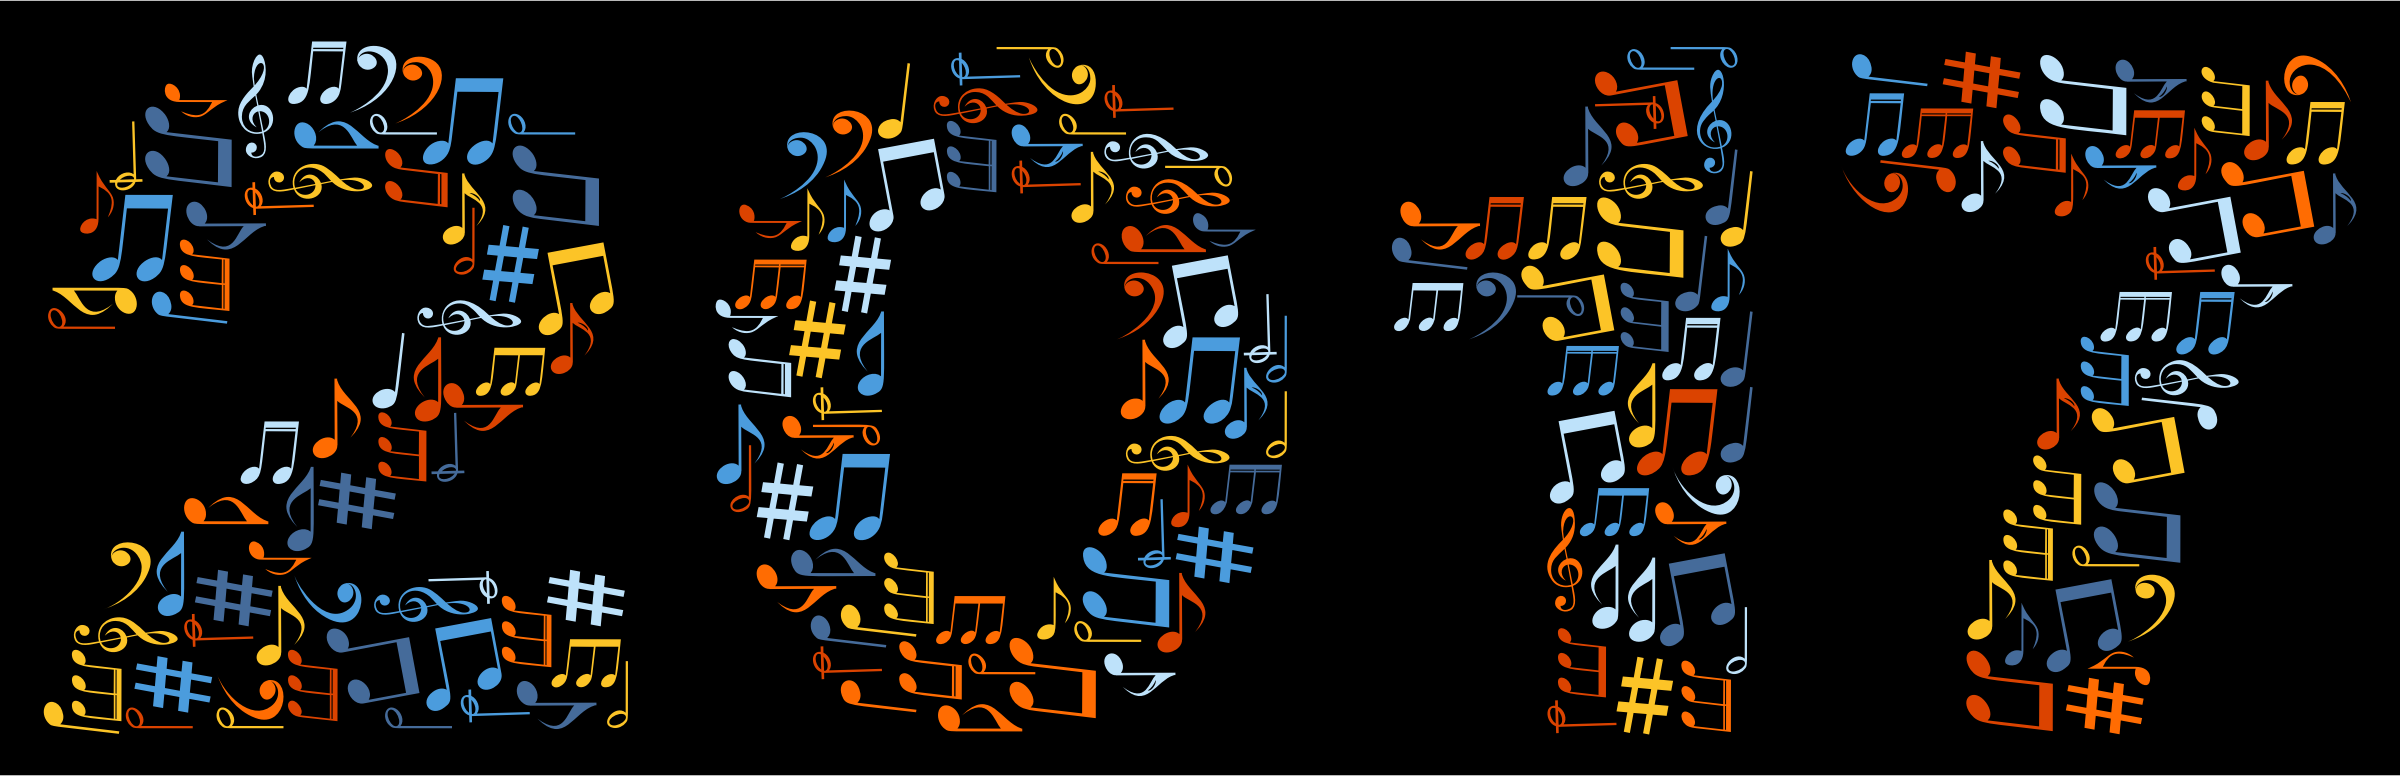 2017 Musical Notes Typography by GDJ